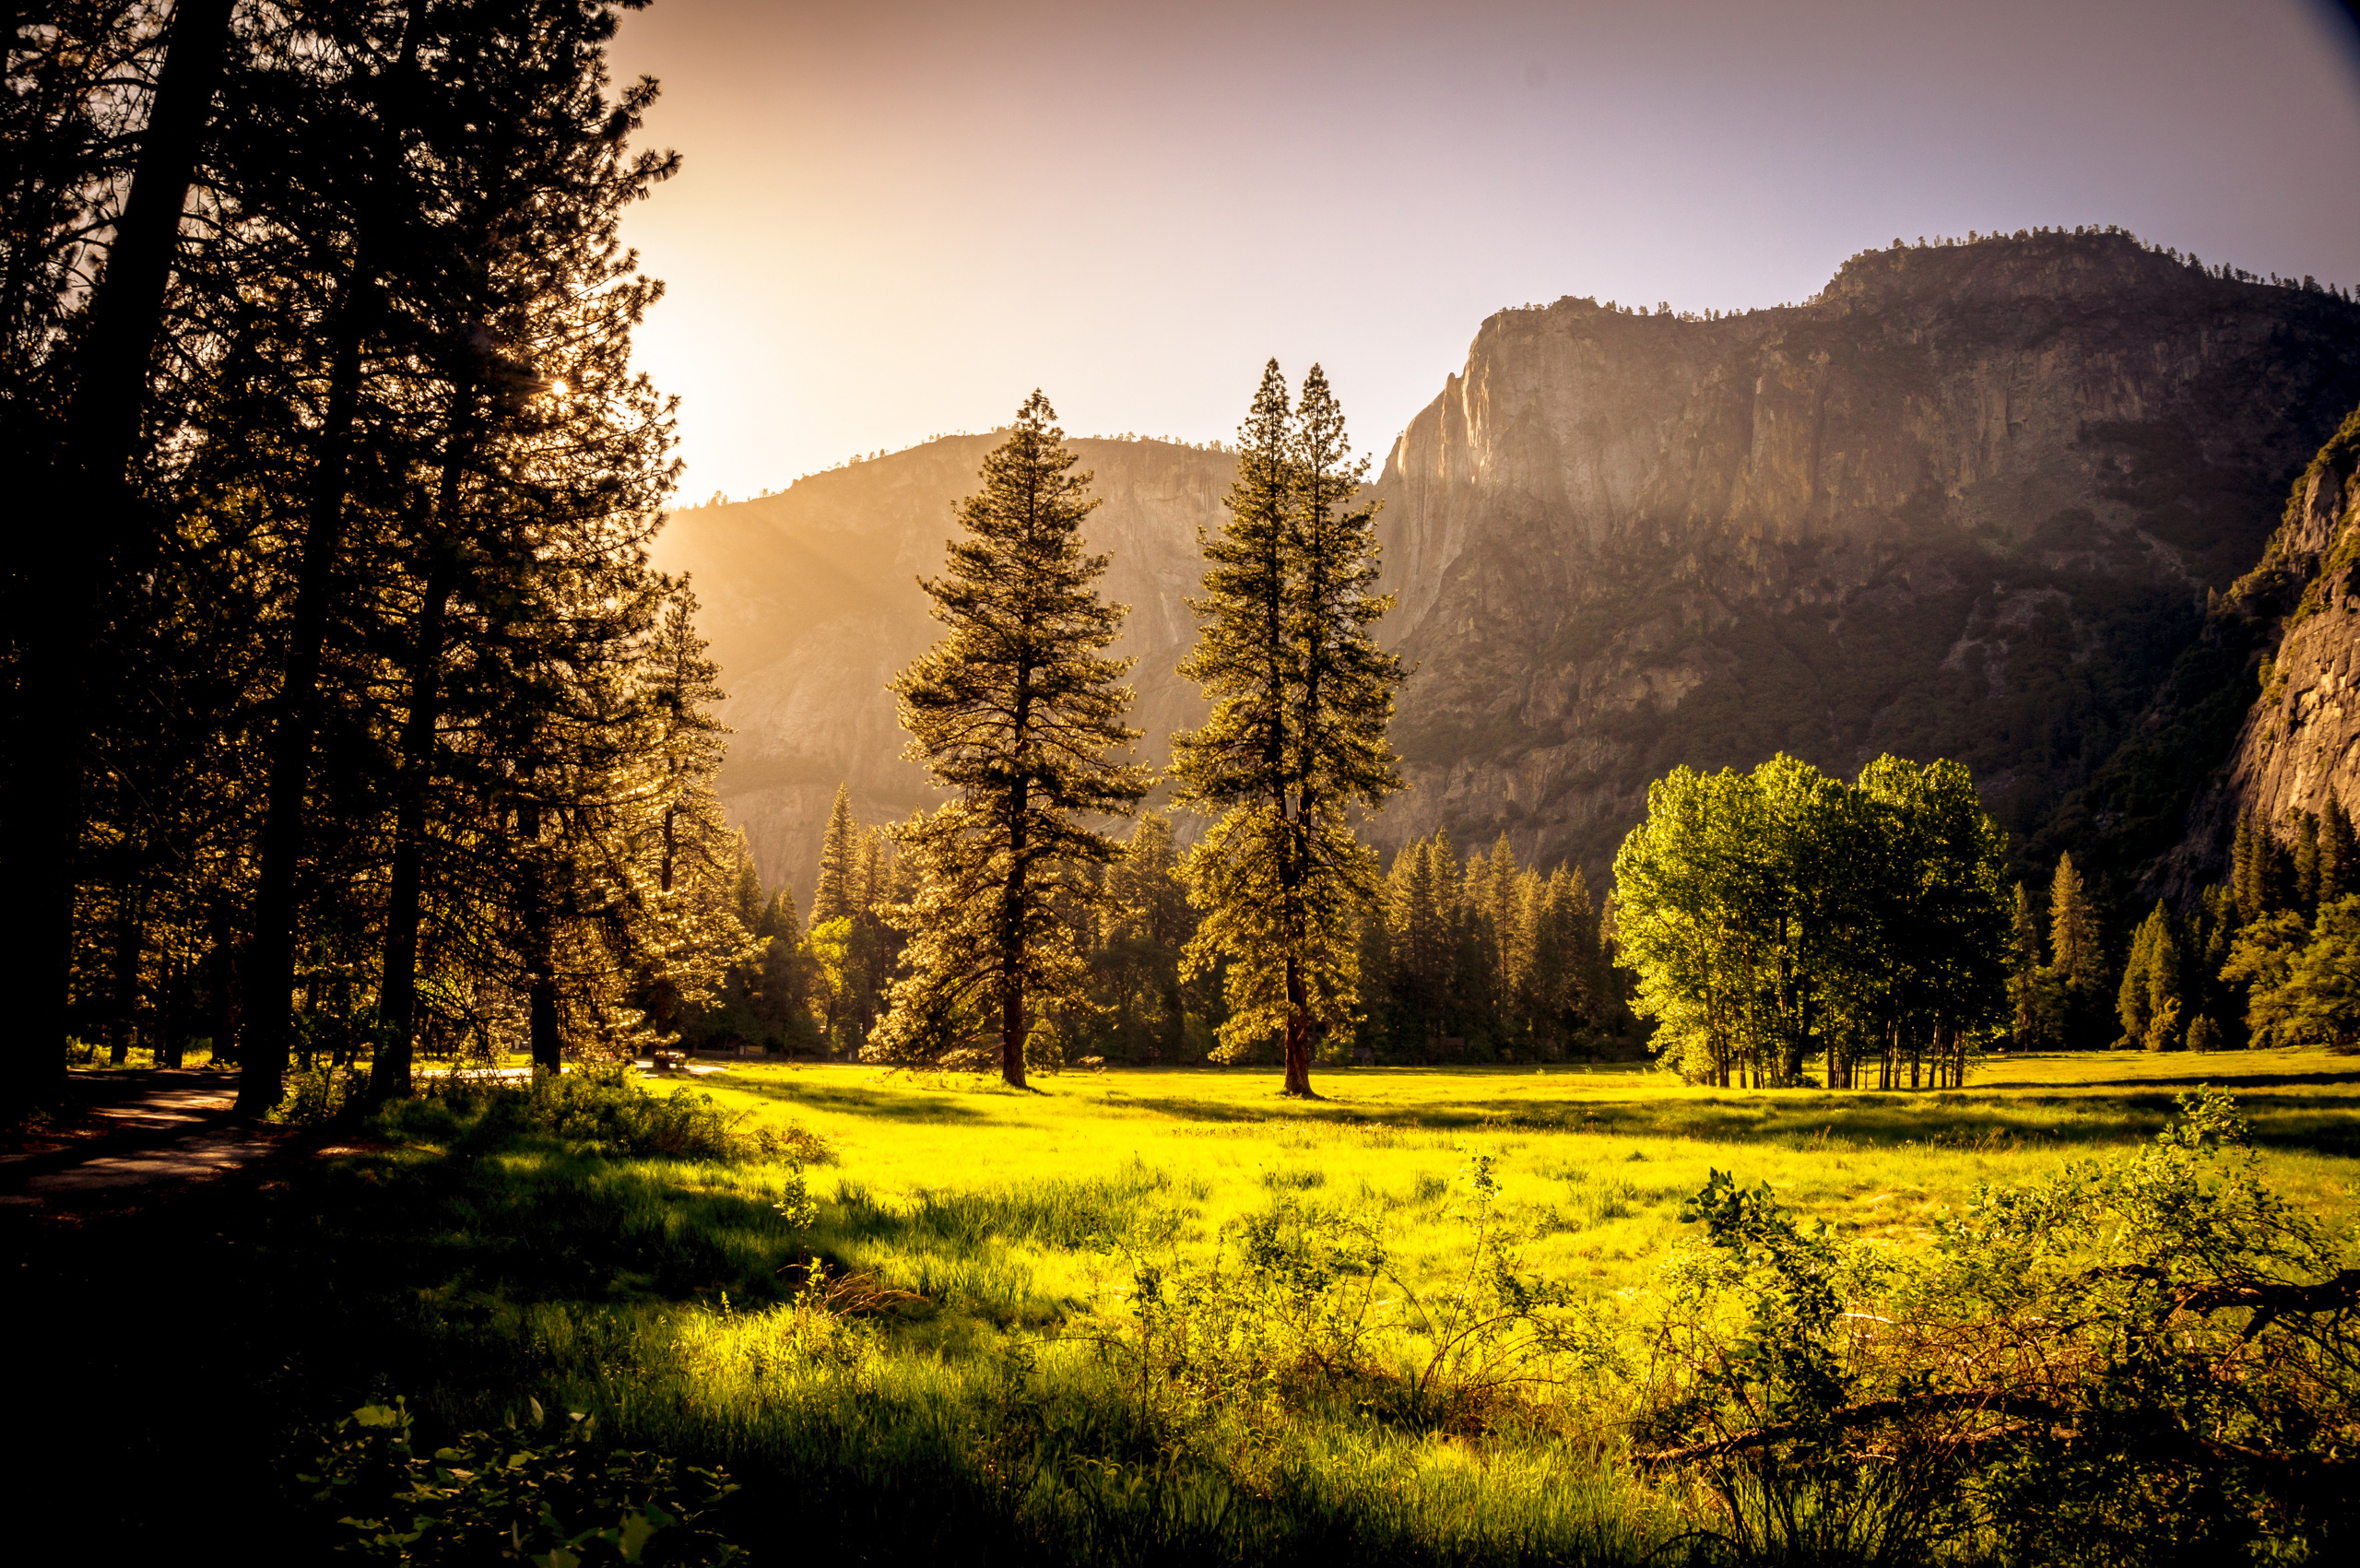 Green grass field trees hd nature 4k wallpapers images - Wallpapers 1280x800 nature ...